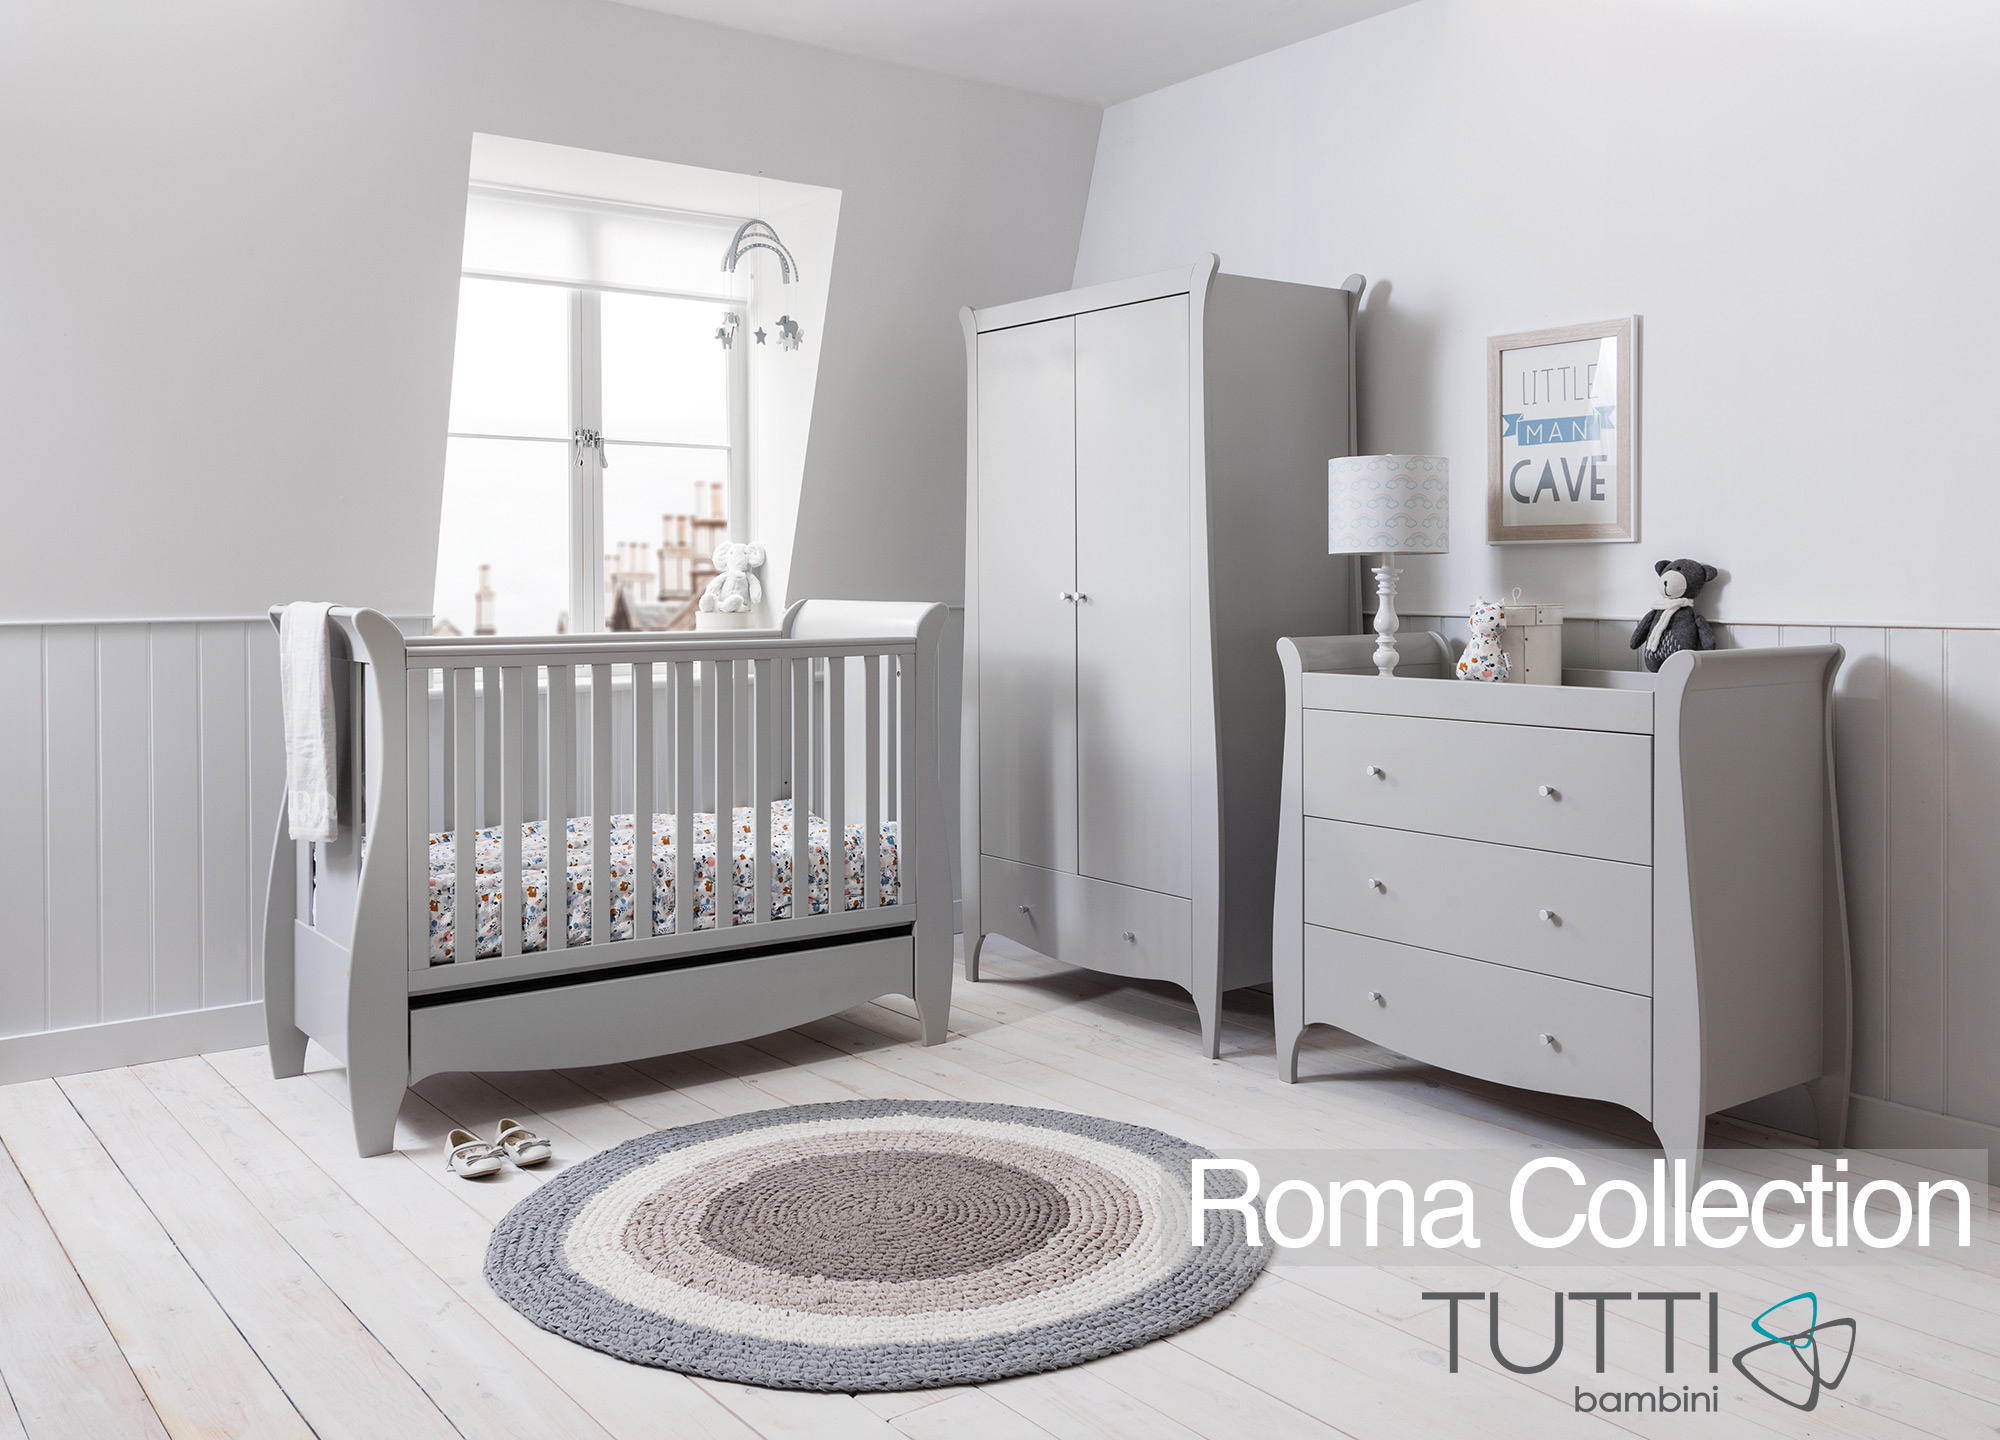 Truffle Grey Baby Cot Bed and Sleigh Design Chest of Drawers Two Piece Solid Wood Furniture Tutti Bambini Roma Nursery Furniture Set